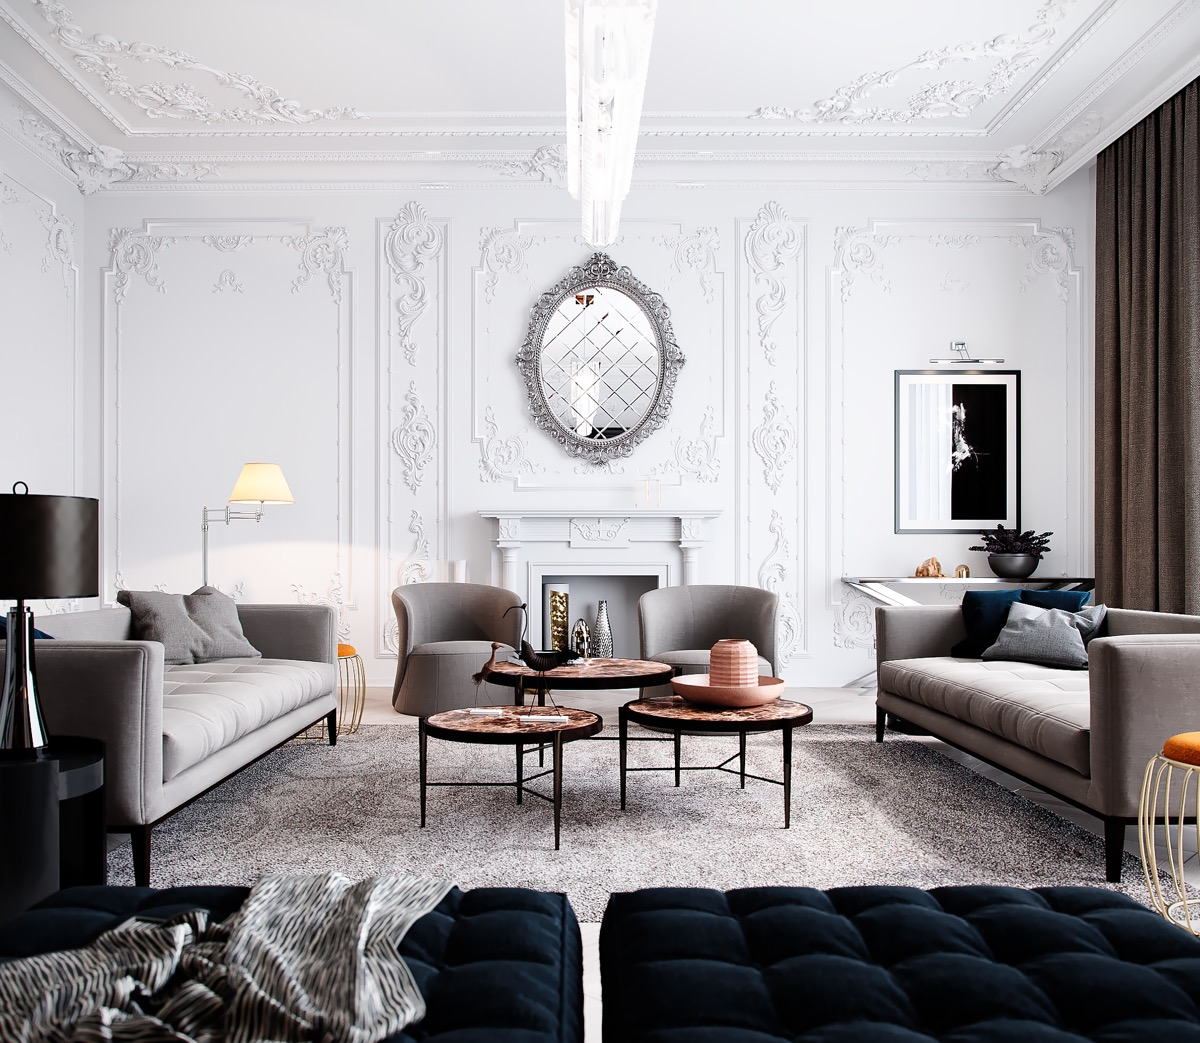 Living Room Decor Inspiration: 51 Luxury Living Rooms And Tips You Could Use From Them